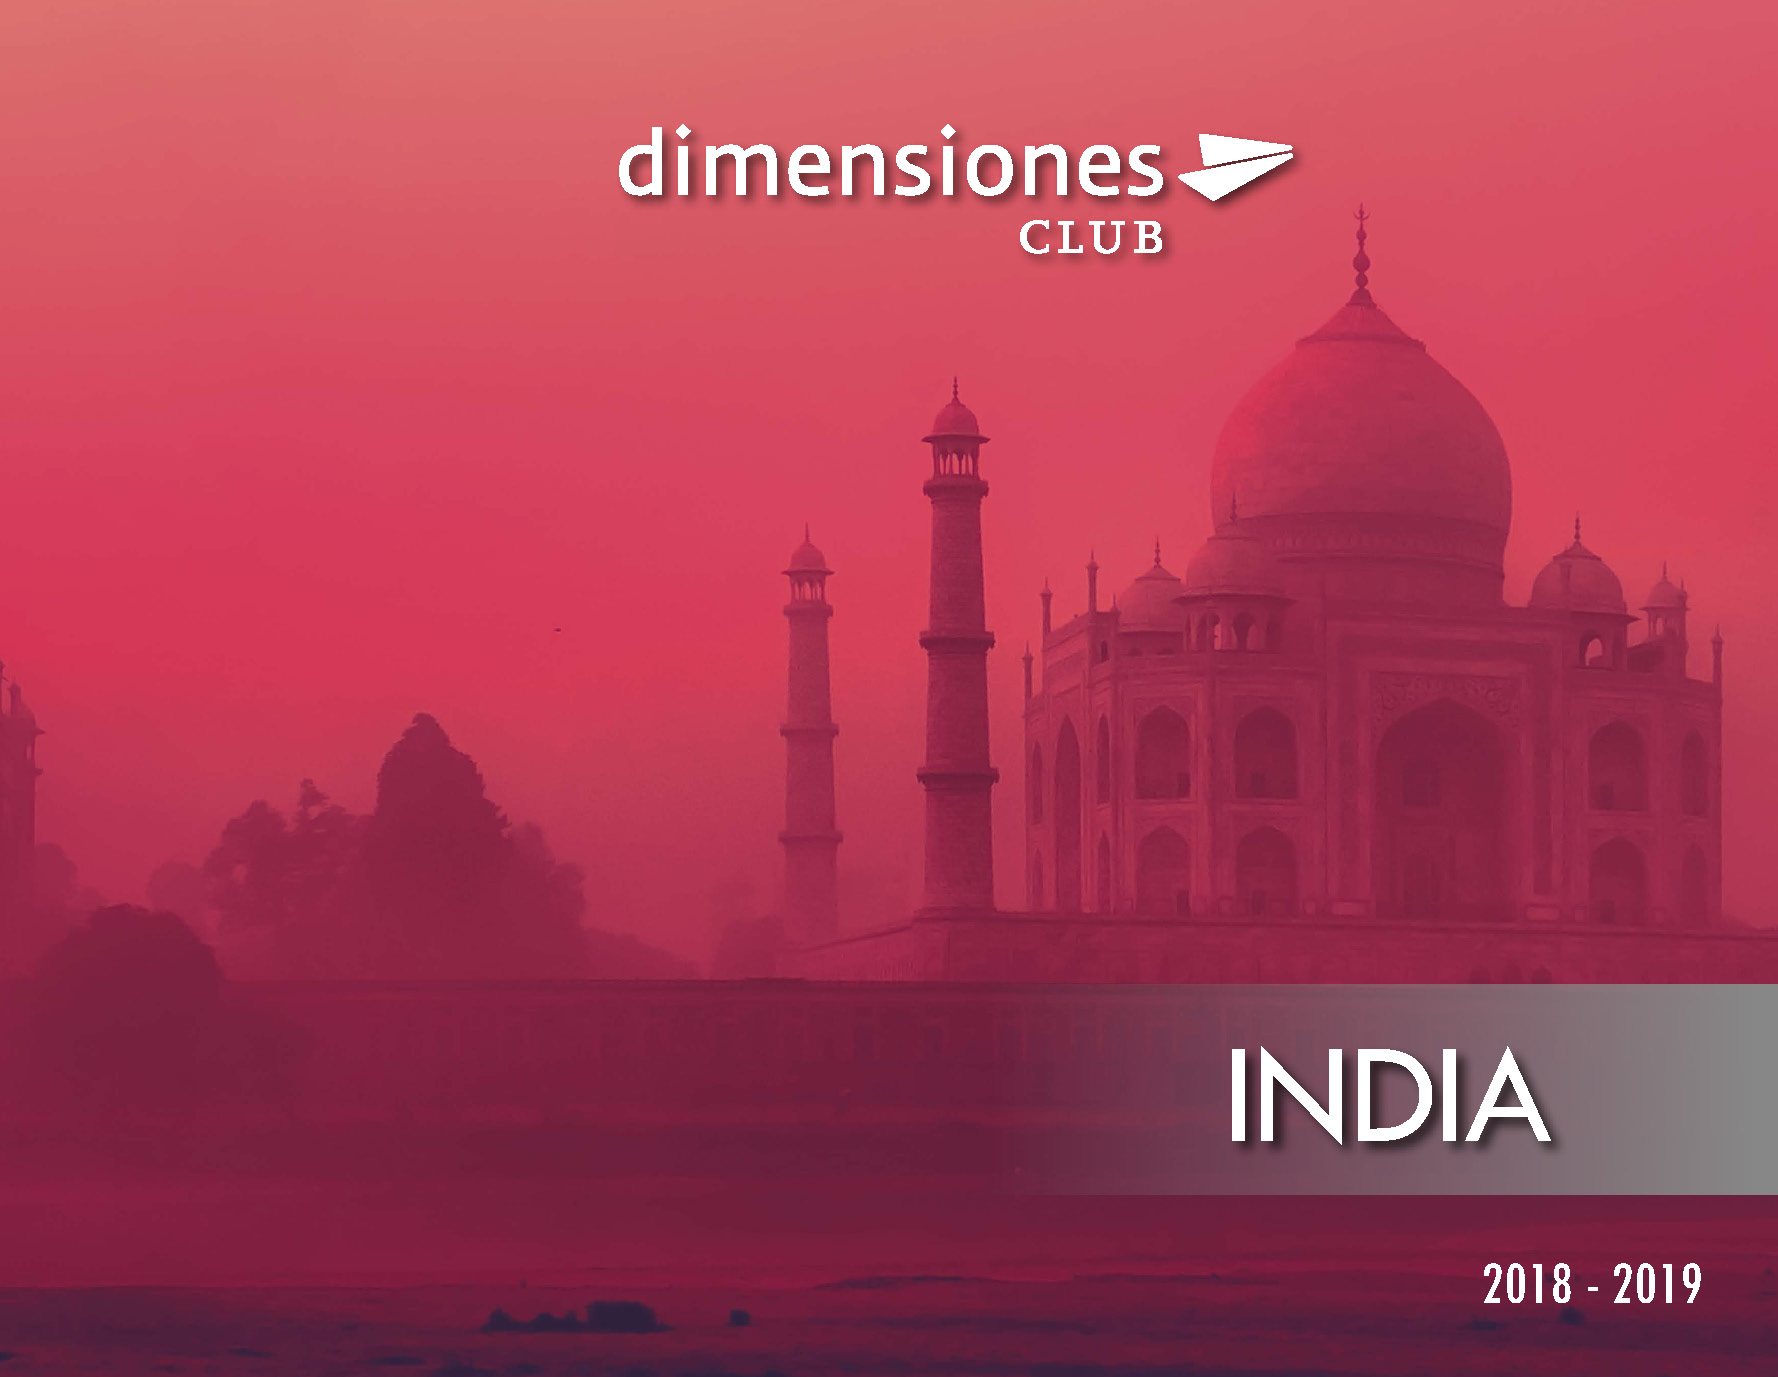 Catalogo Dimensiones Club India 2018-2019